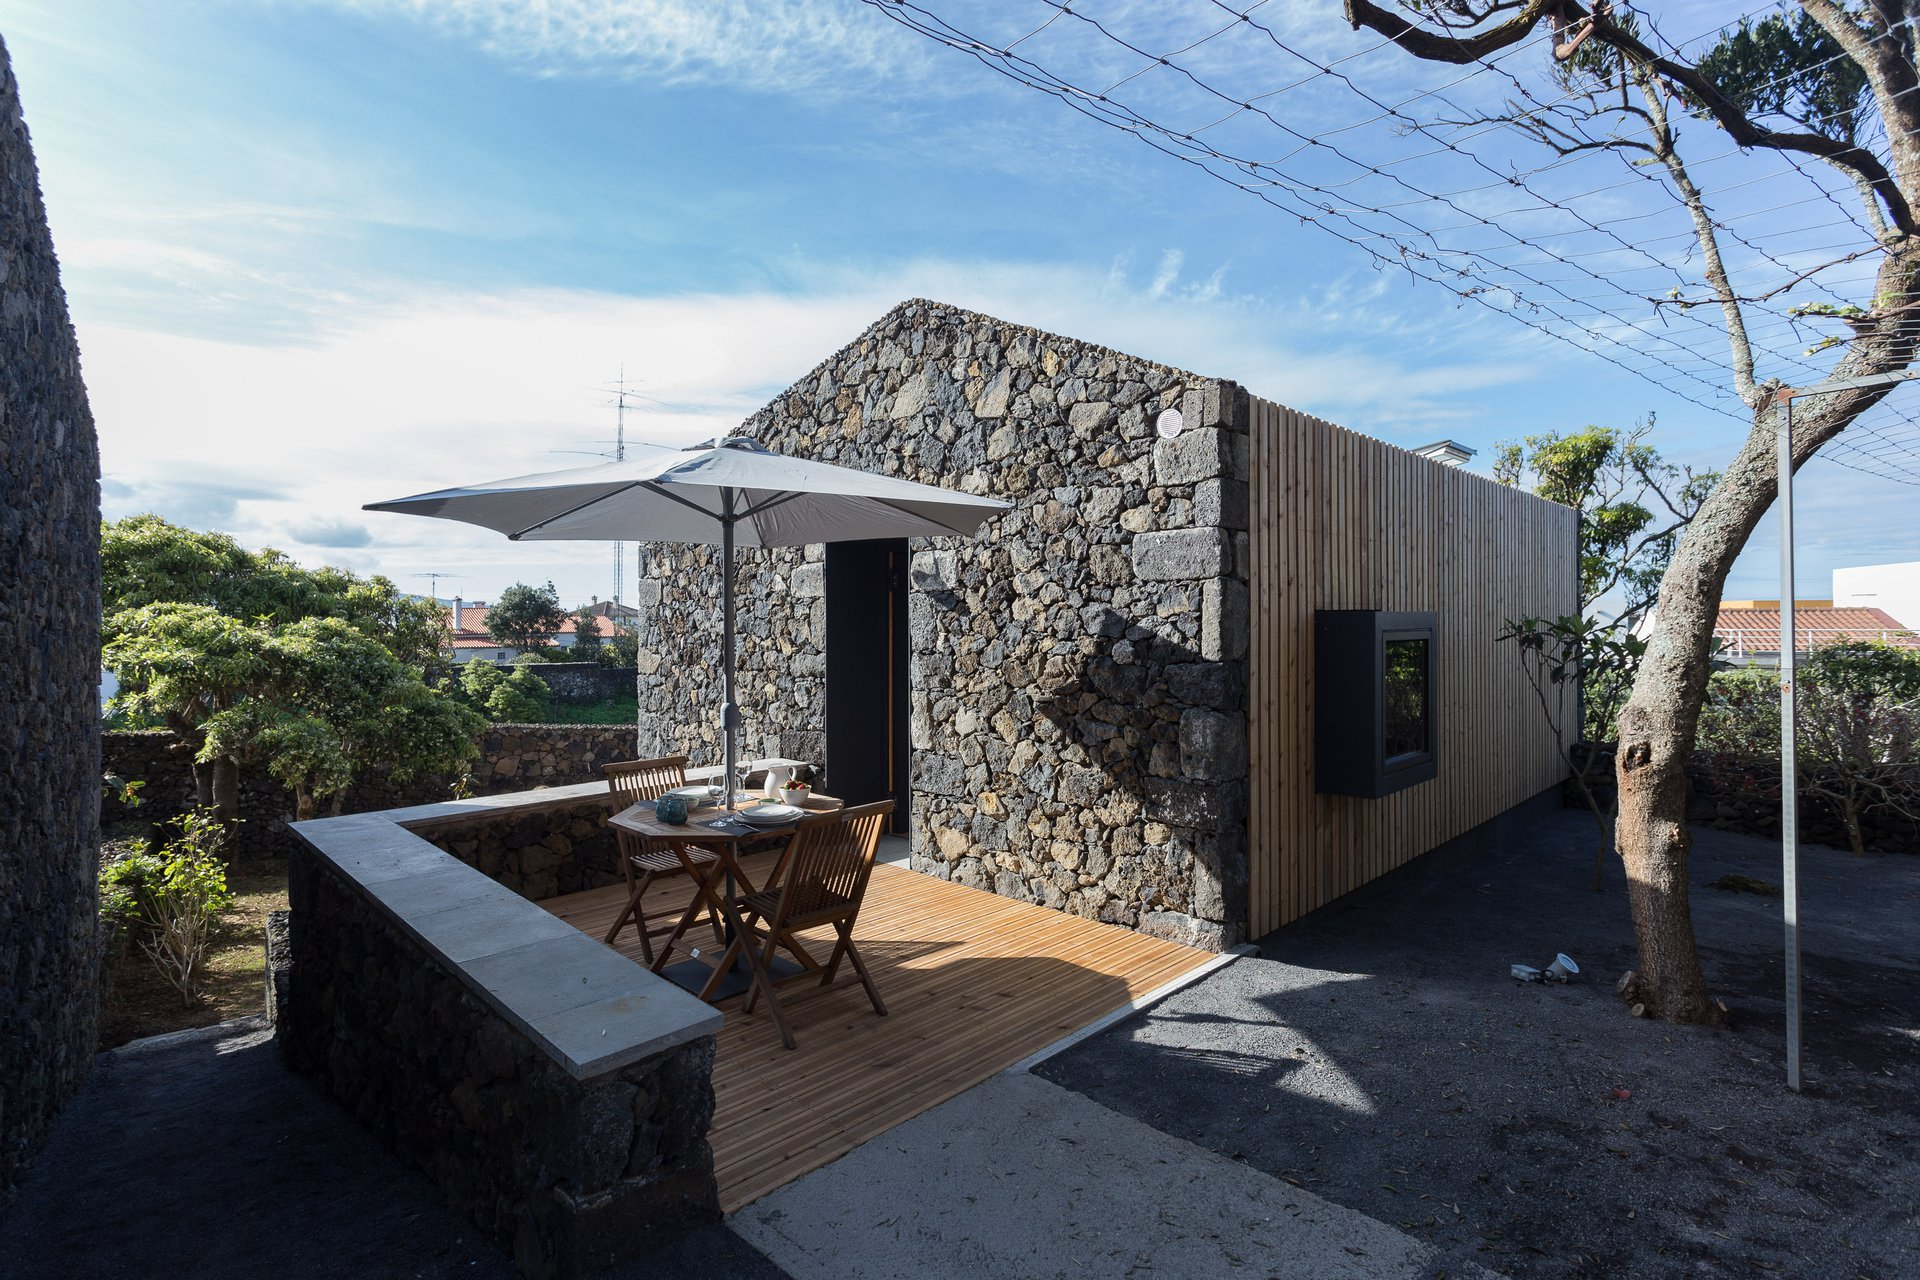 Reinvented Azorean architecture and landscape